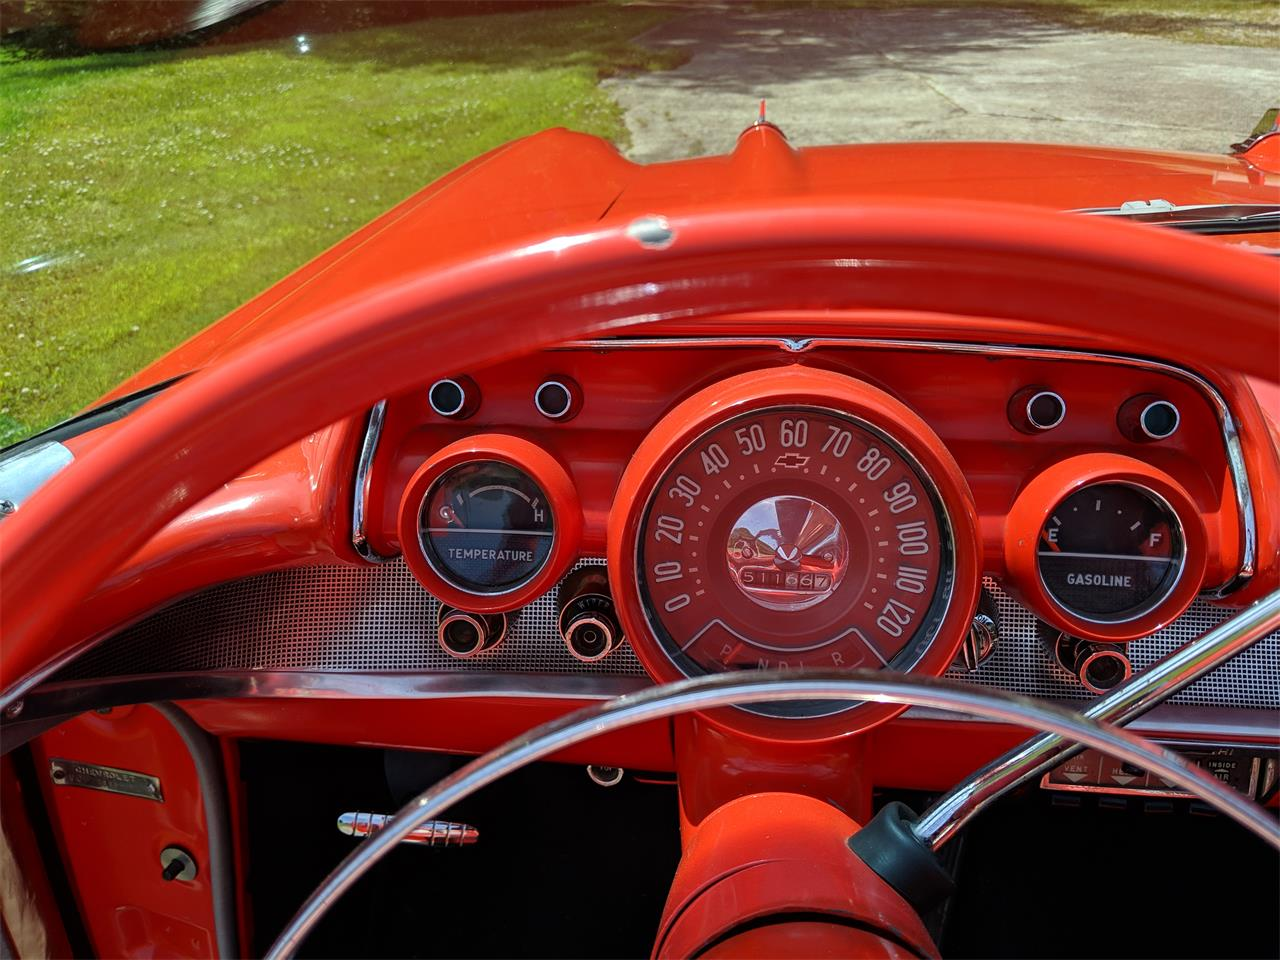 Large Picture of '57 Bel Air located in Georgia - $95,000.00 Offered by a Private Seller - Q0ZG